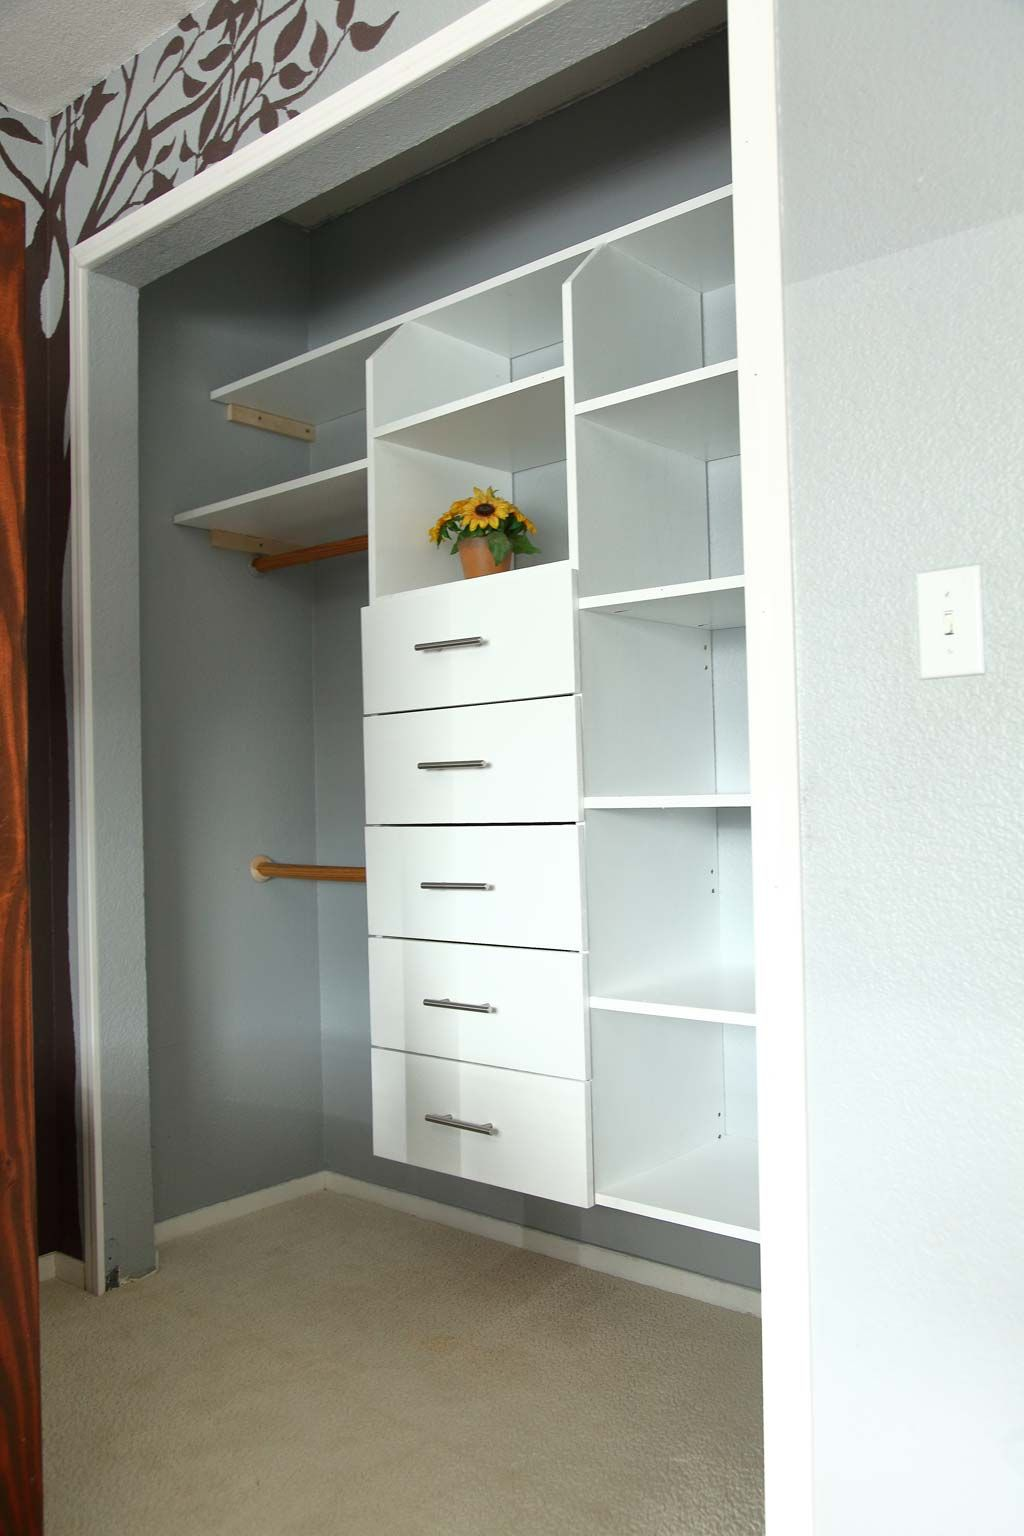 I Made This Closet Organizer Because This Closet Was A Mess My Younger Son Could Not Closet Organizer With Drawers Closet Organization Diy Closet Organization